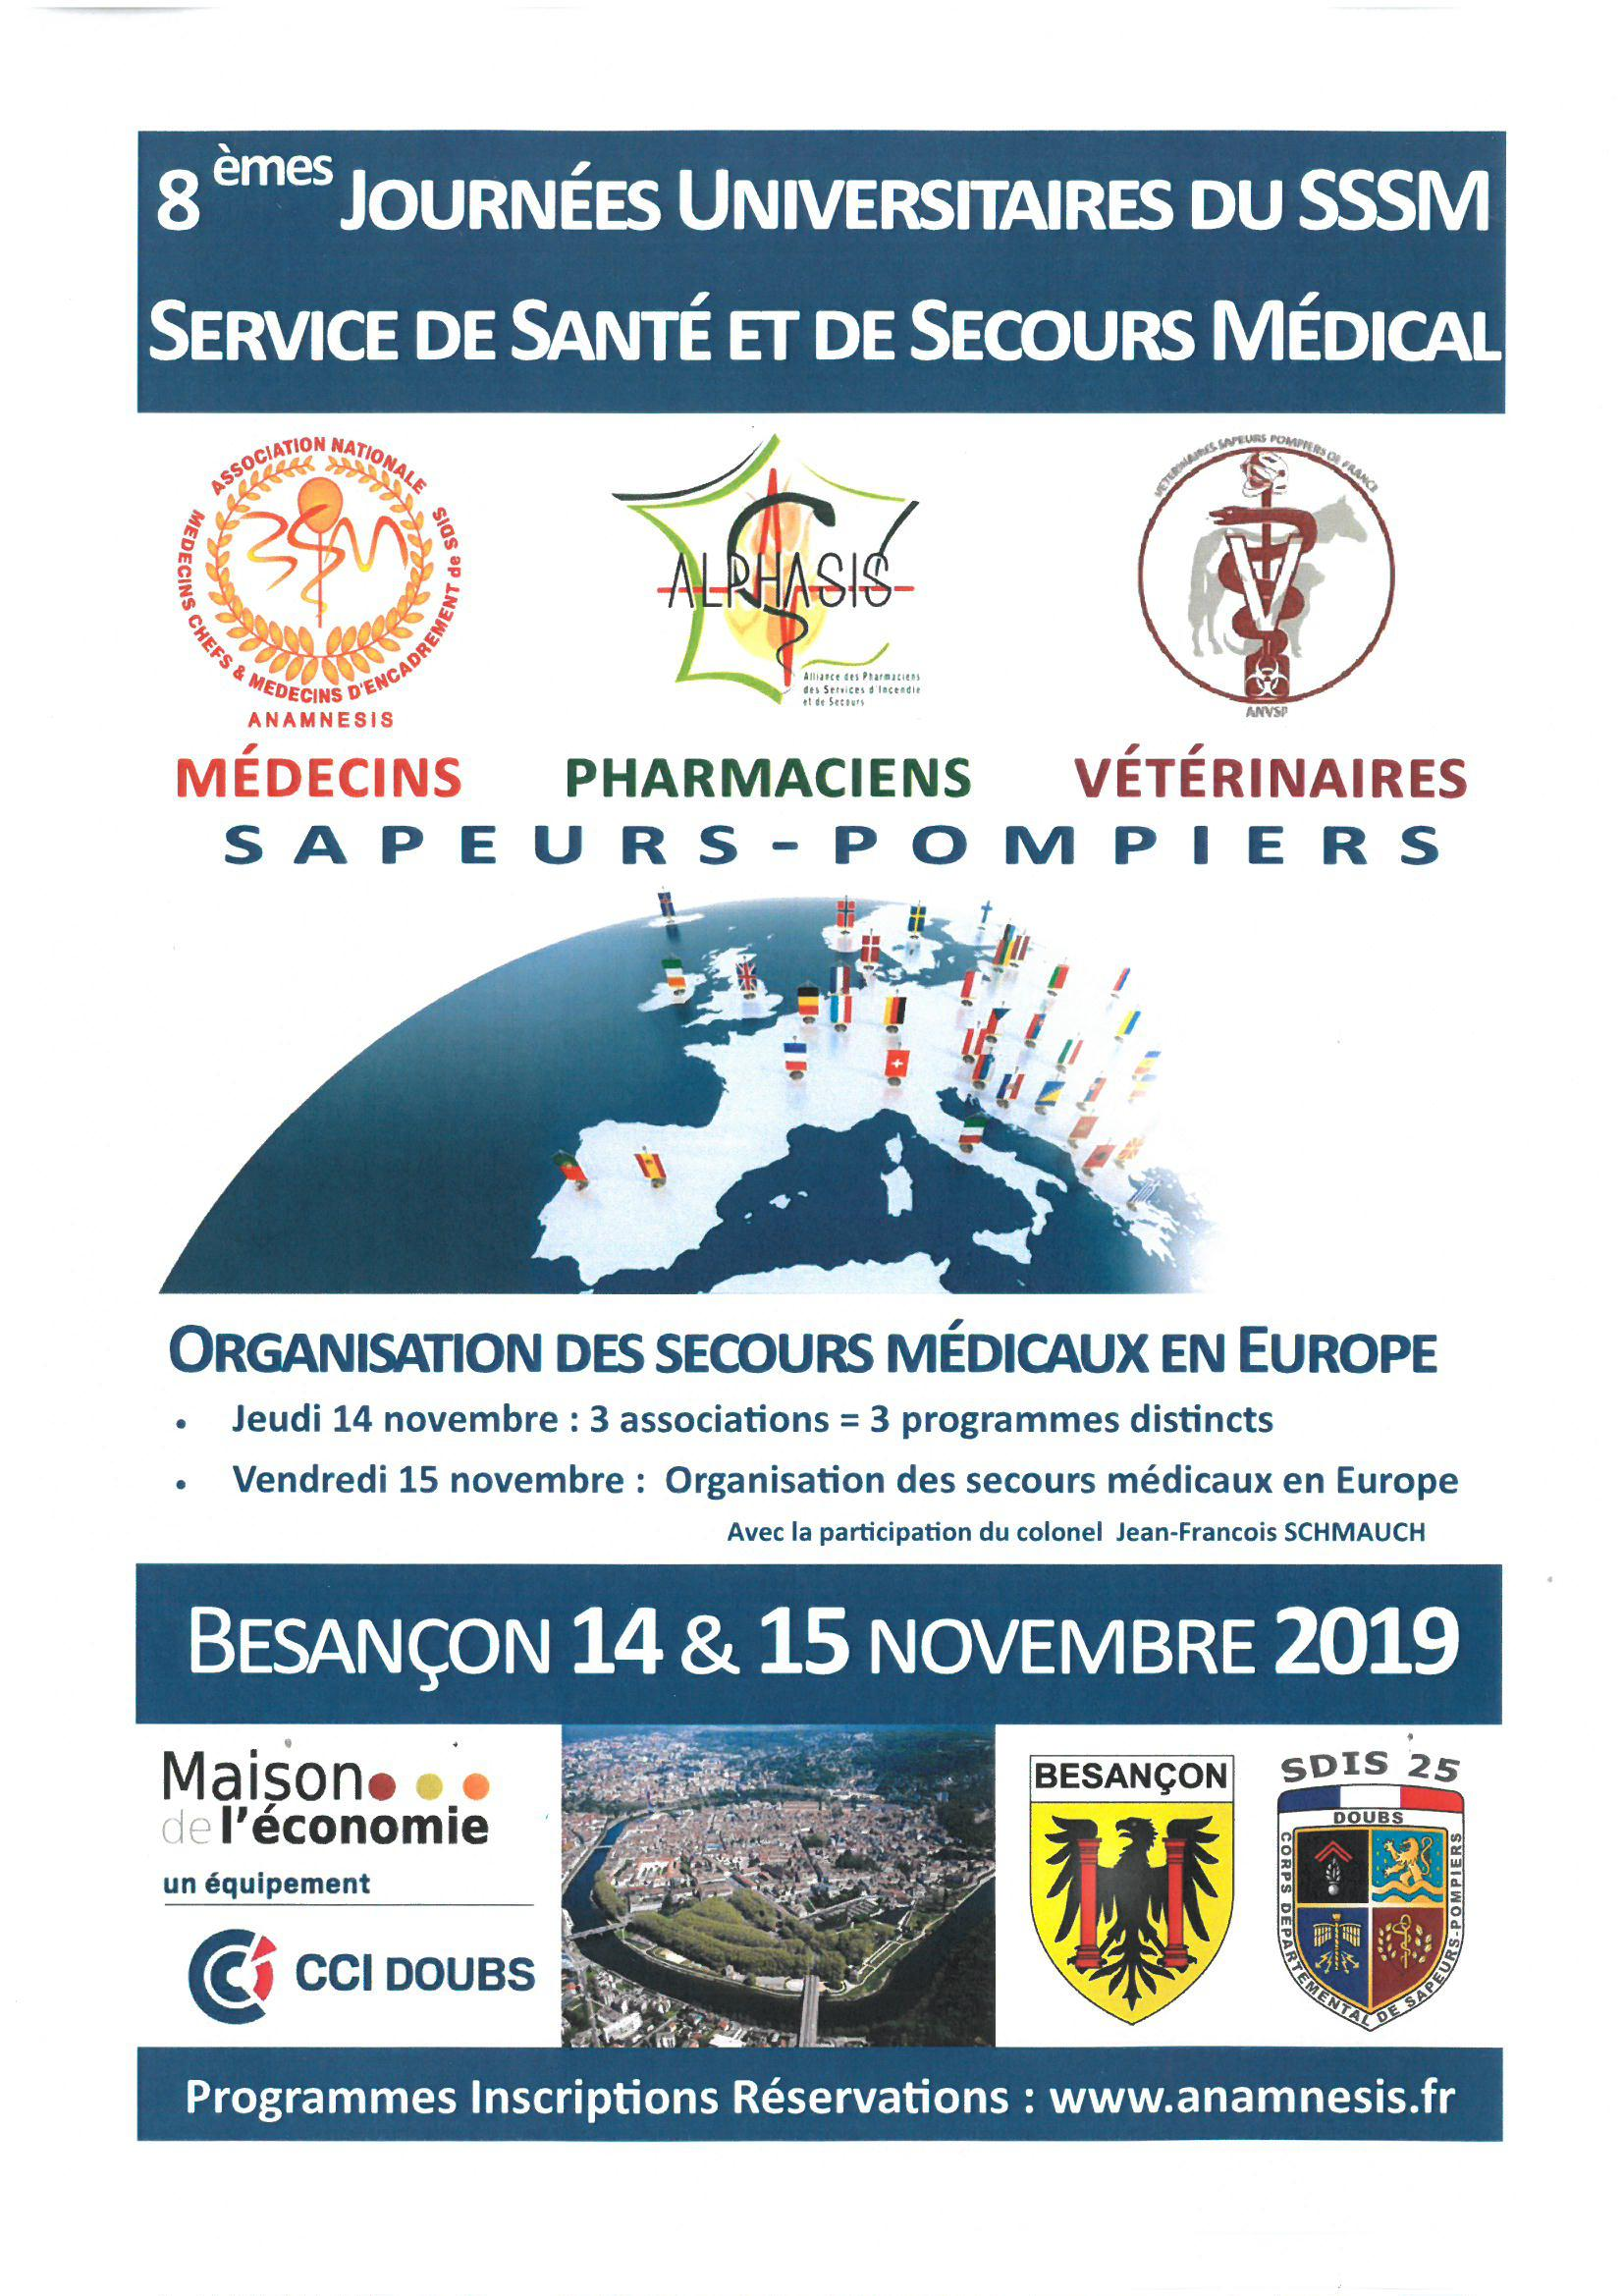 SAVE THE DATE : Journées Universitaires 2019 de l'ANAMNESIS, ALPHASIS et ANVSP